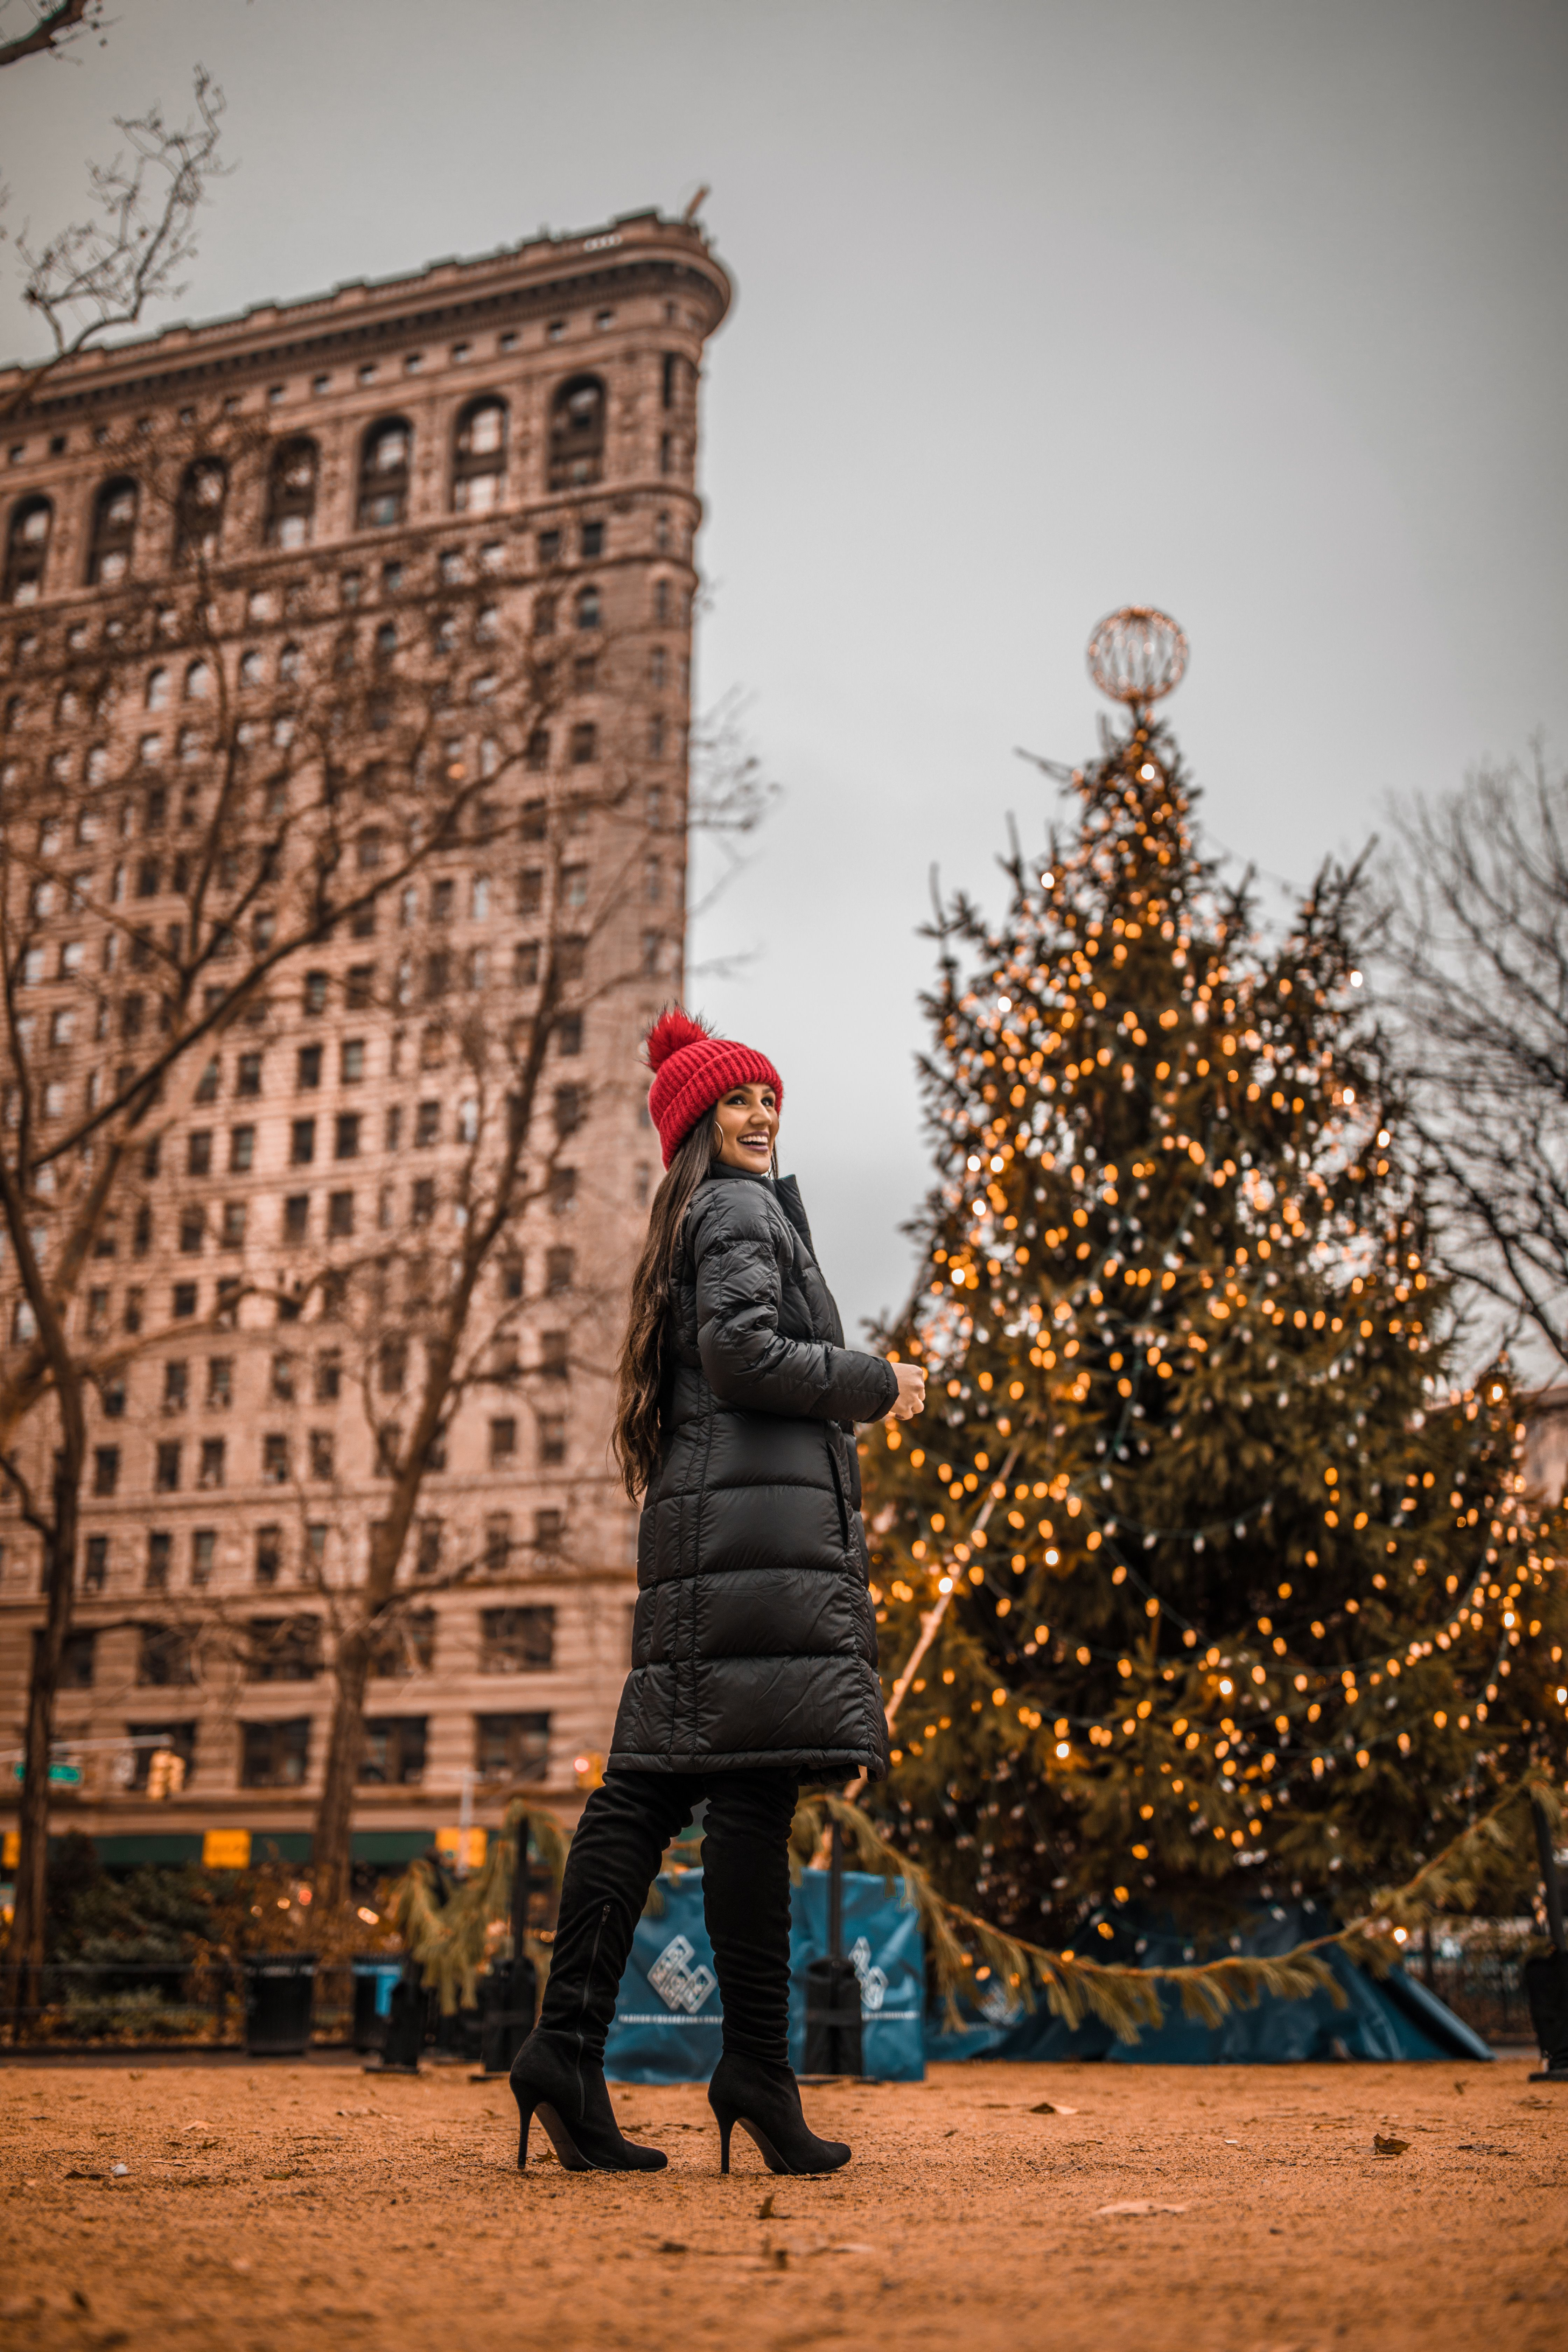 Christmas in NYC: The ultimate New York City holiday guide for bloggers and photographers  #photography #travelblogger #newyorkcity #nyc #nycblogger #cityphotography #christmas #christmasinnyc